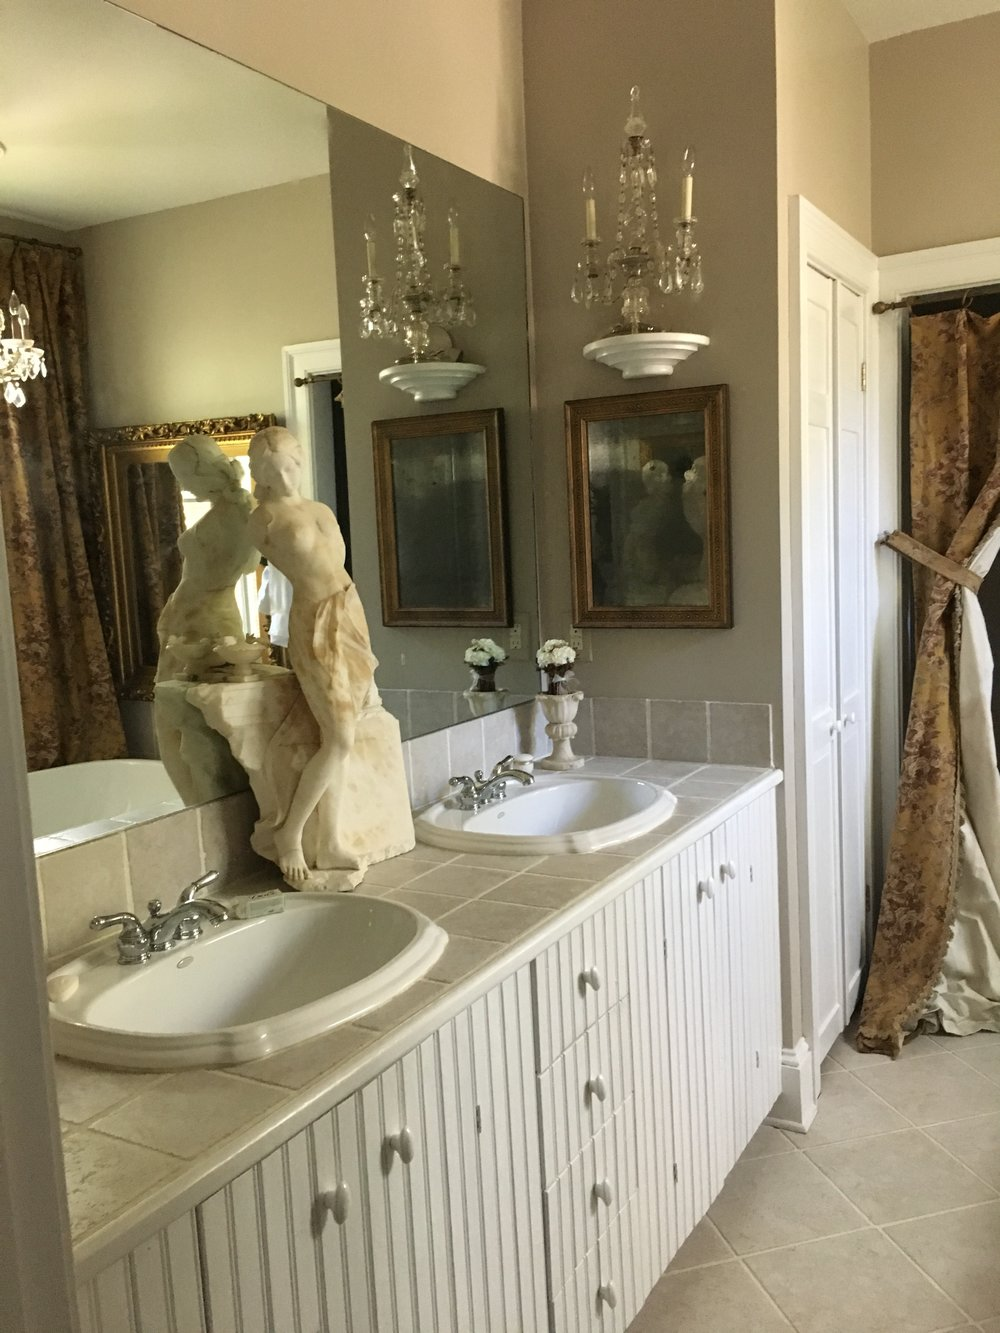 I was loving on the marble statue in the center. This bathroom is more elaborate than my entire house combined!